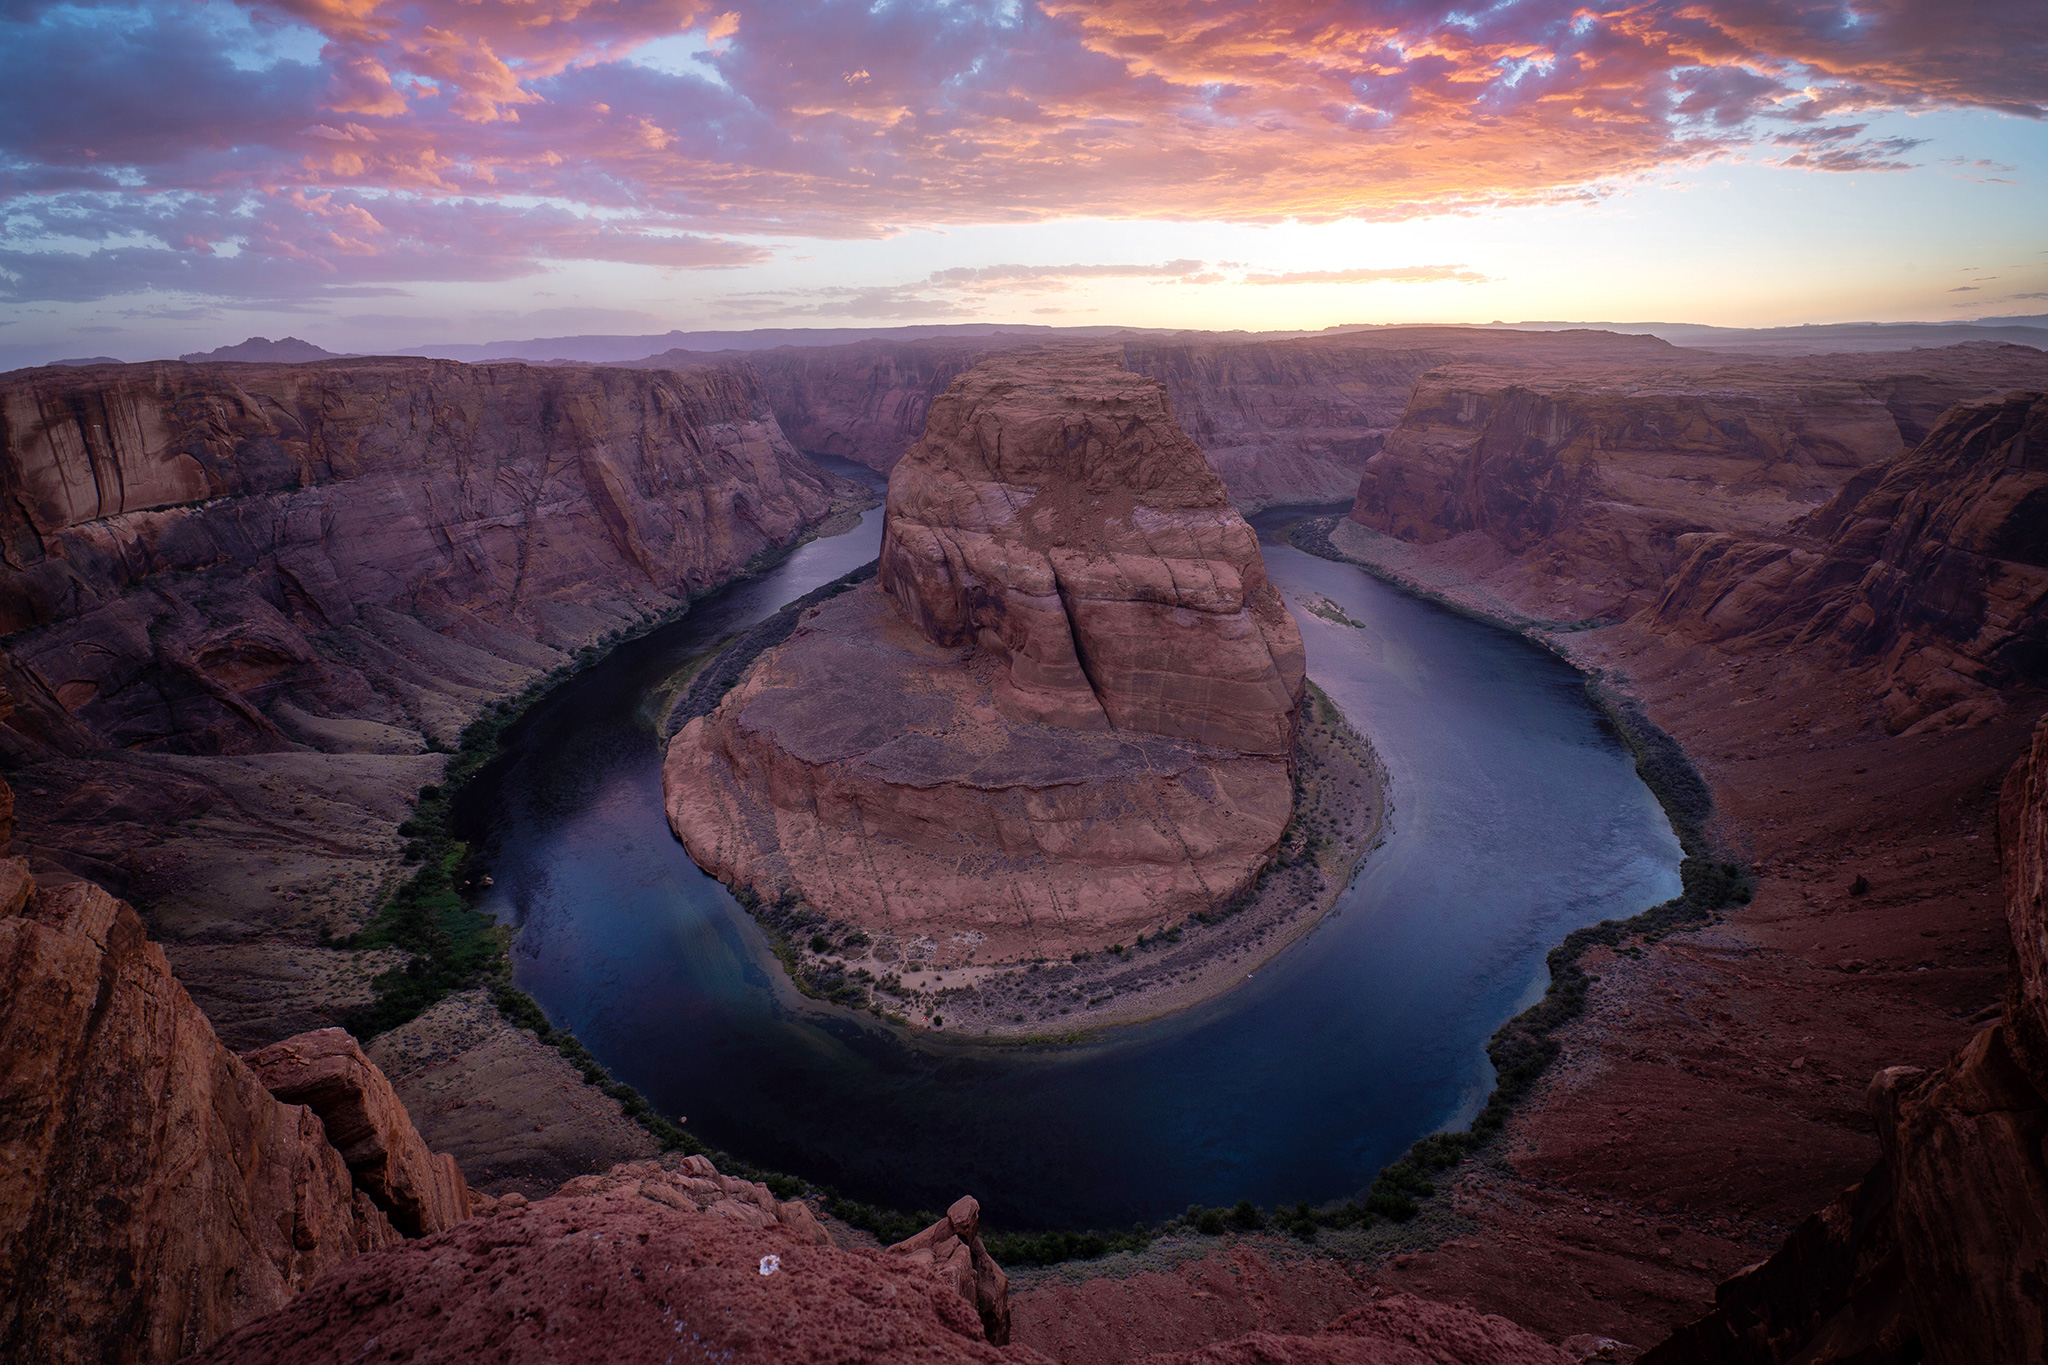 Sunset at Horseshoe Bend.